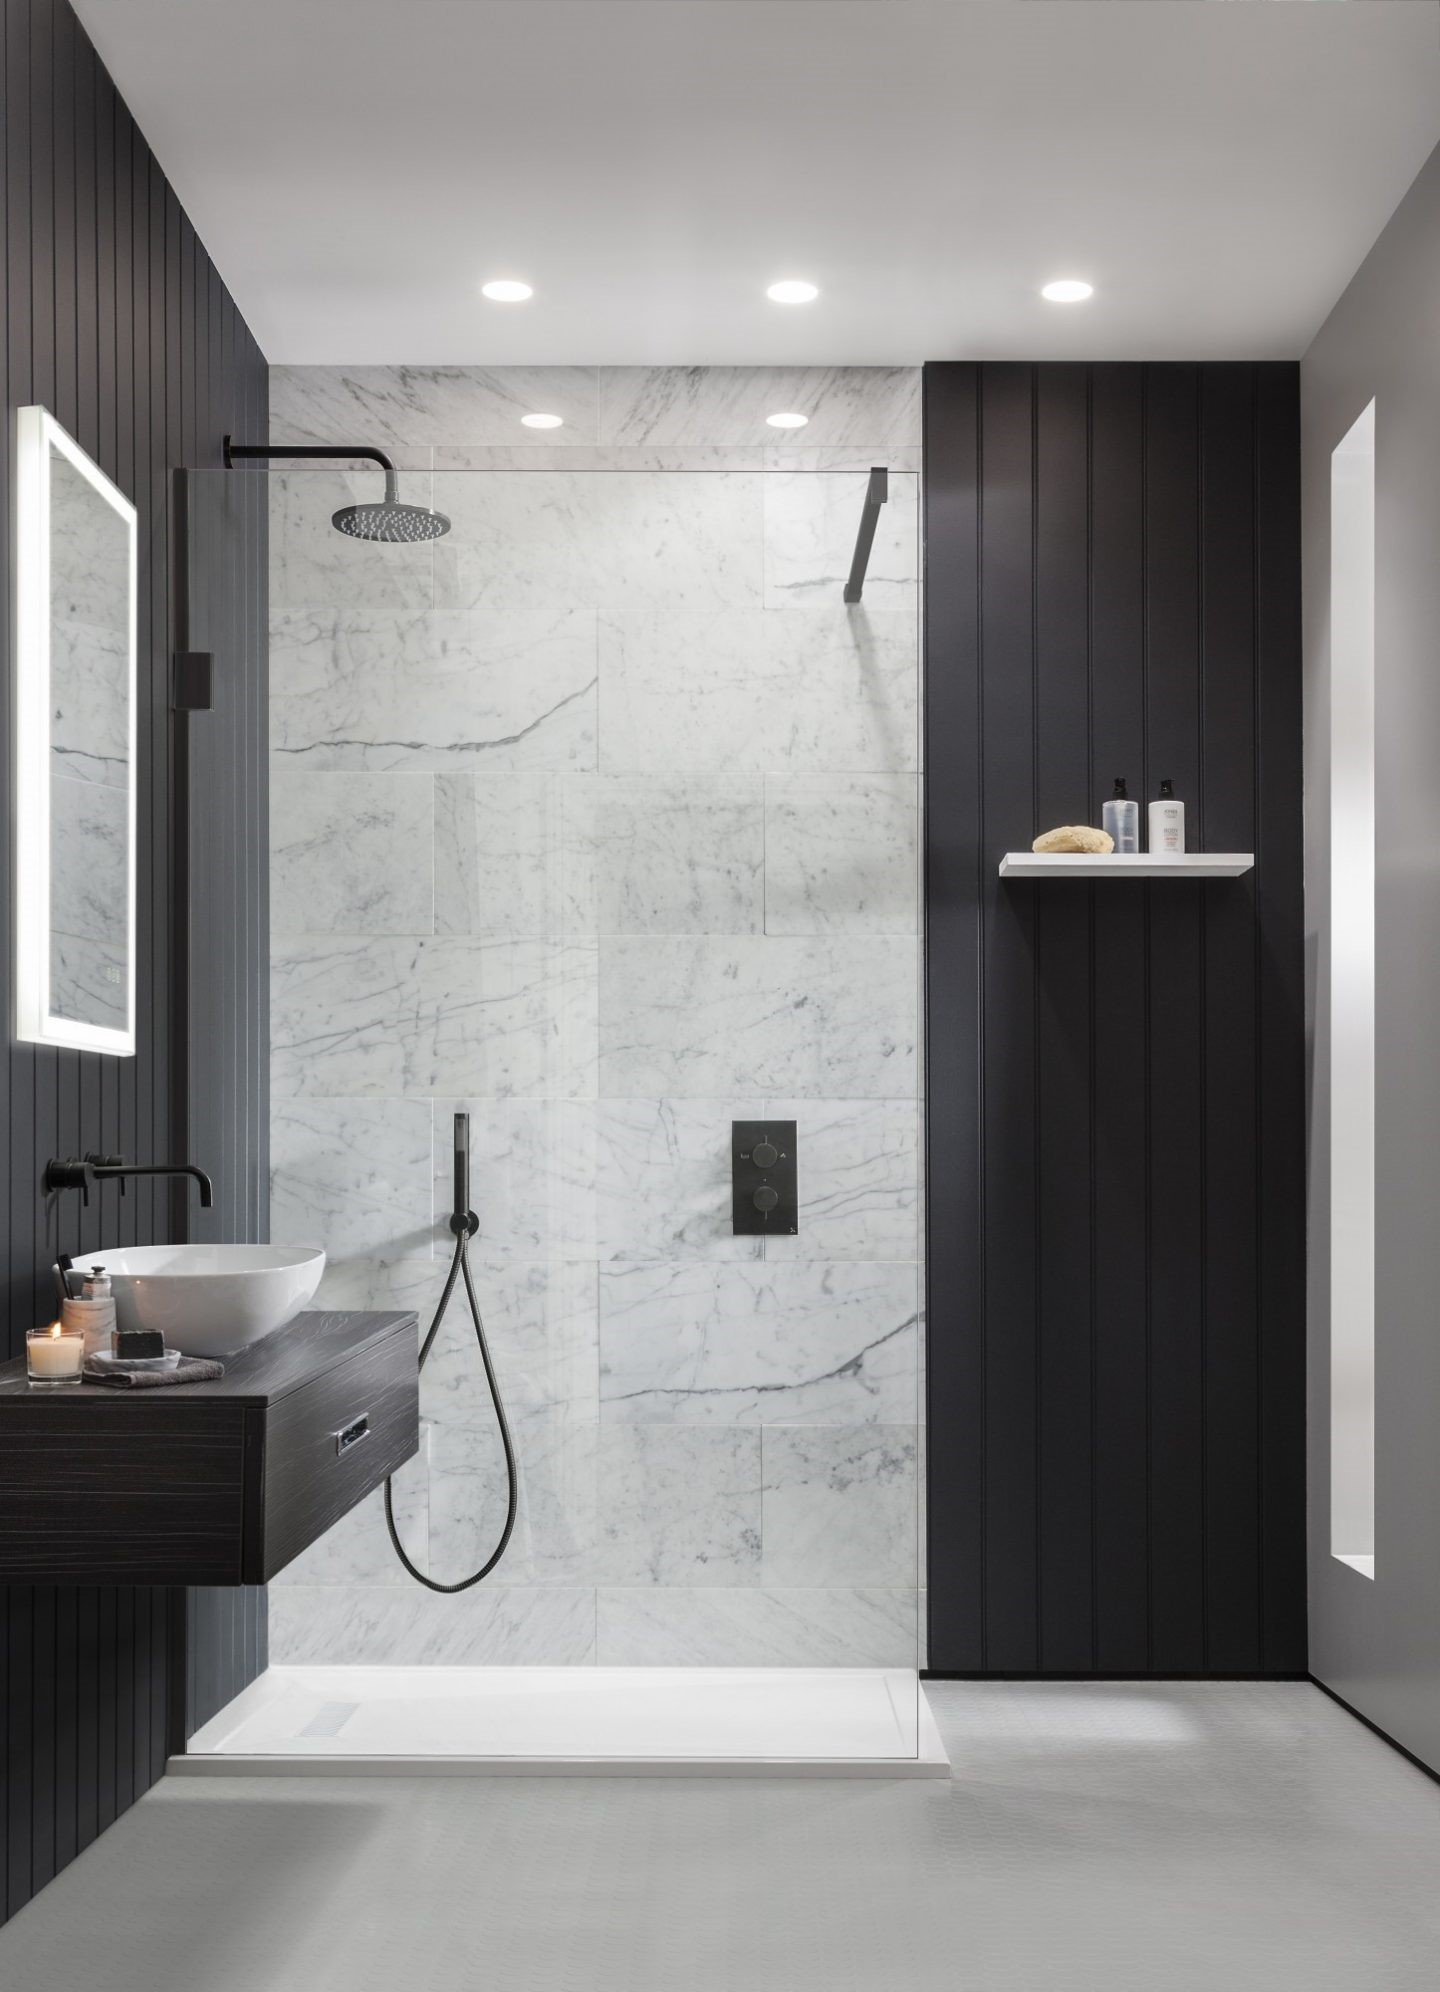 MPRO Matt Black Shower fixed head available from BATHLINE bathrooms.